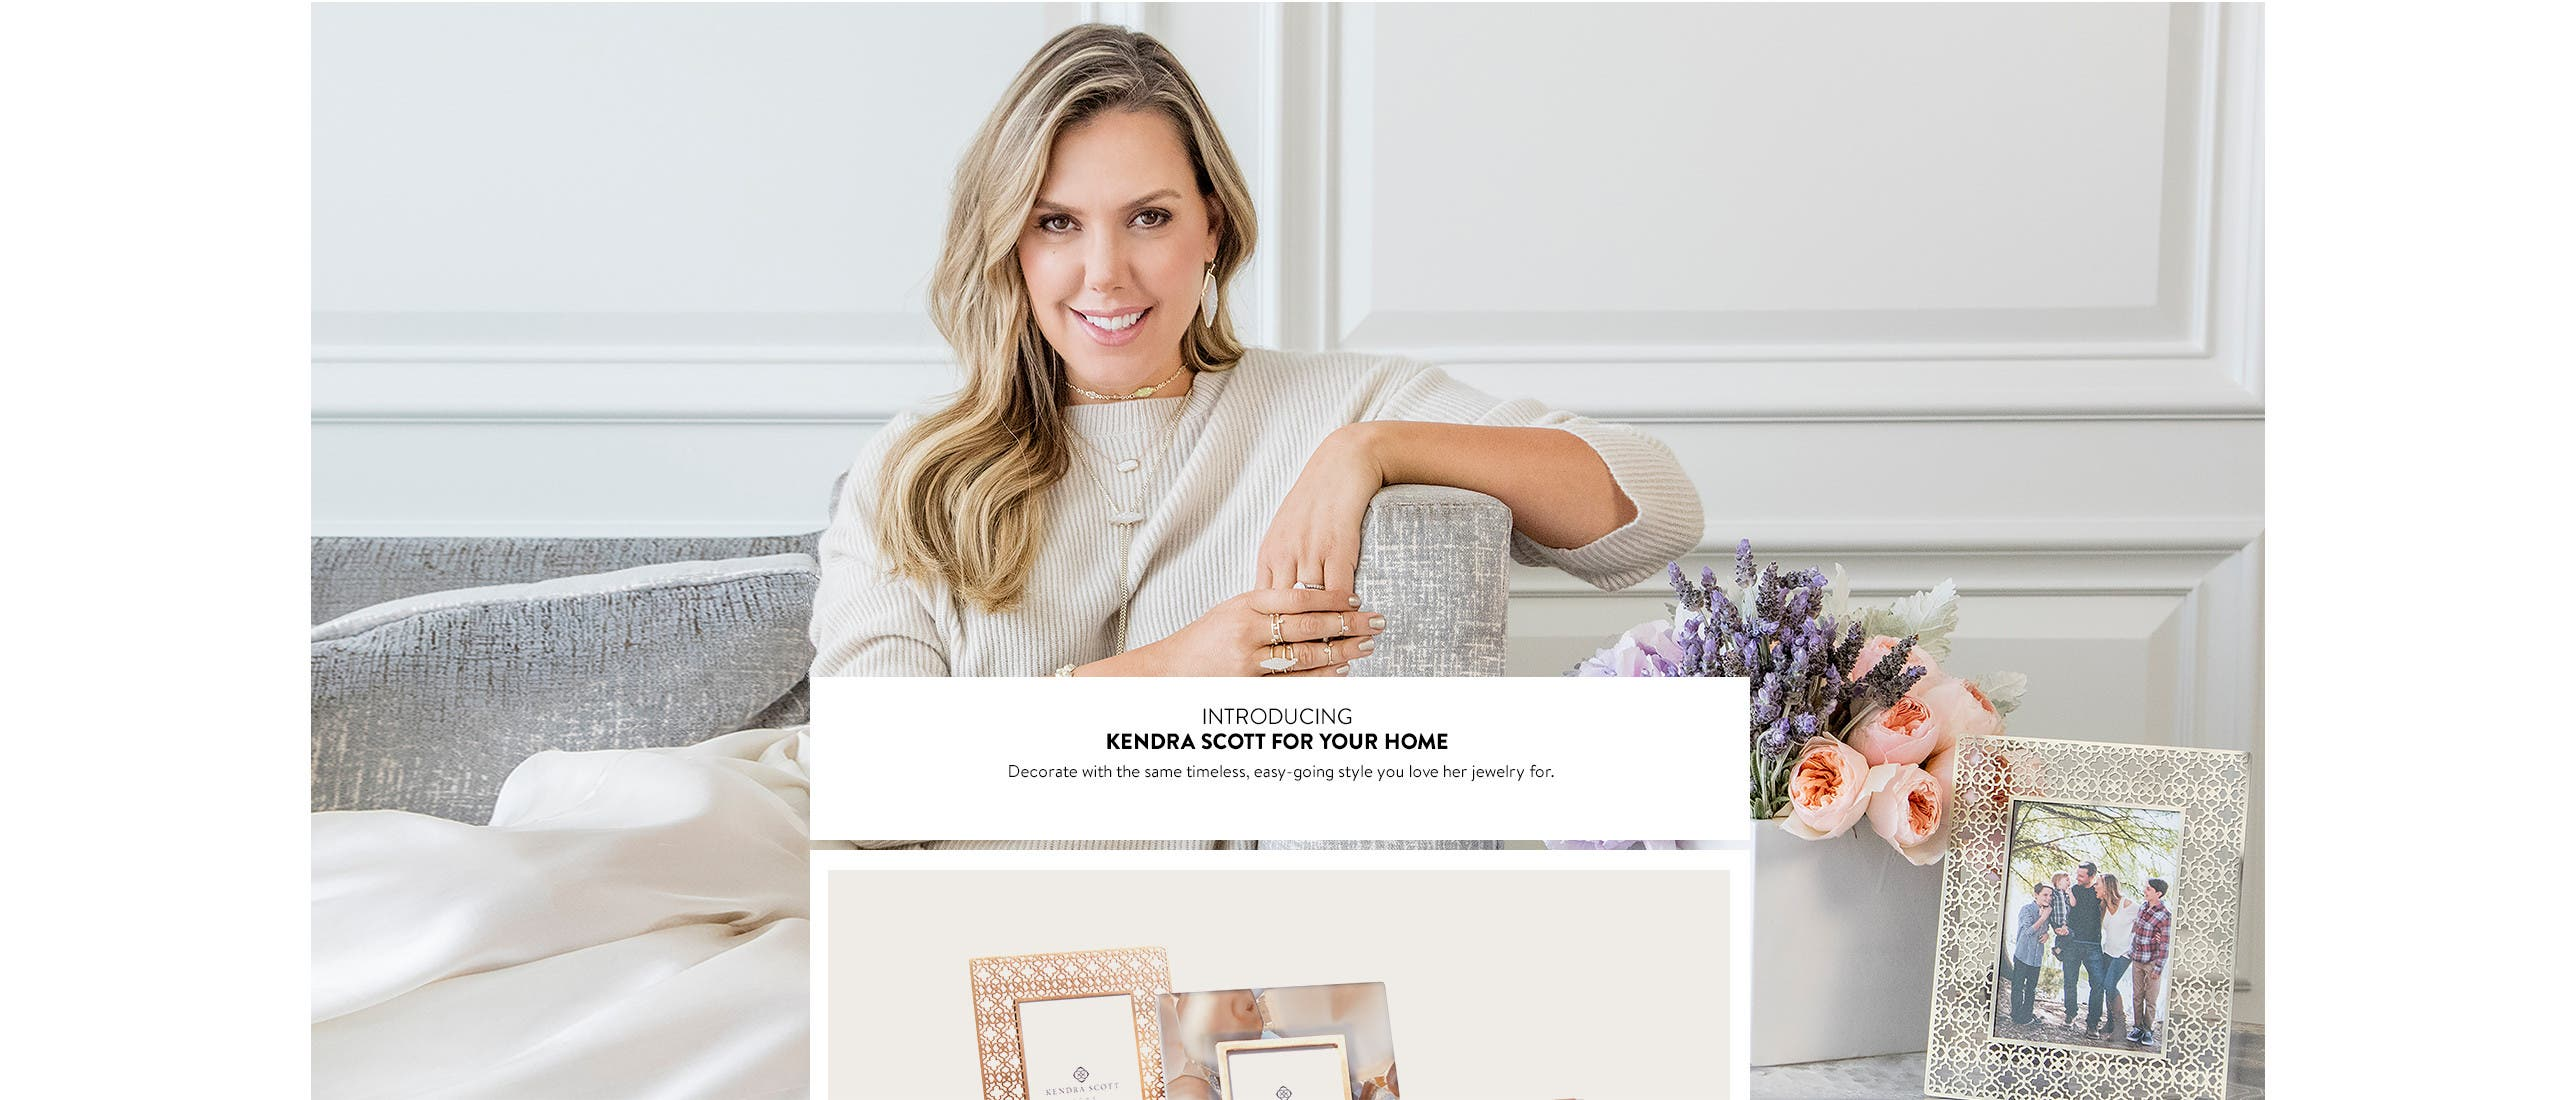 Introducing Kendra Scott for your home.